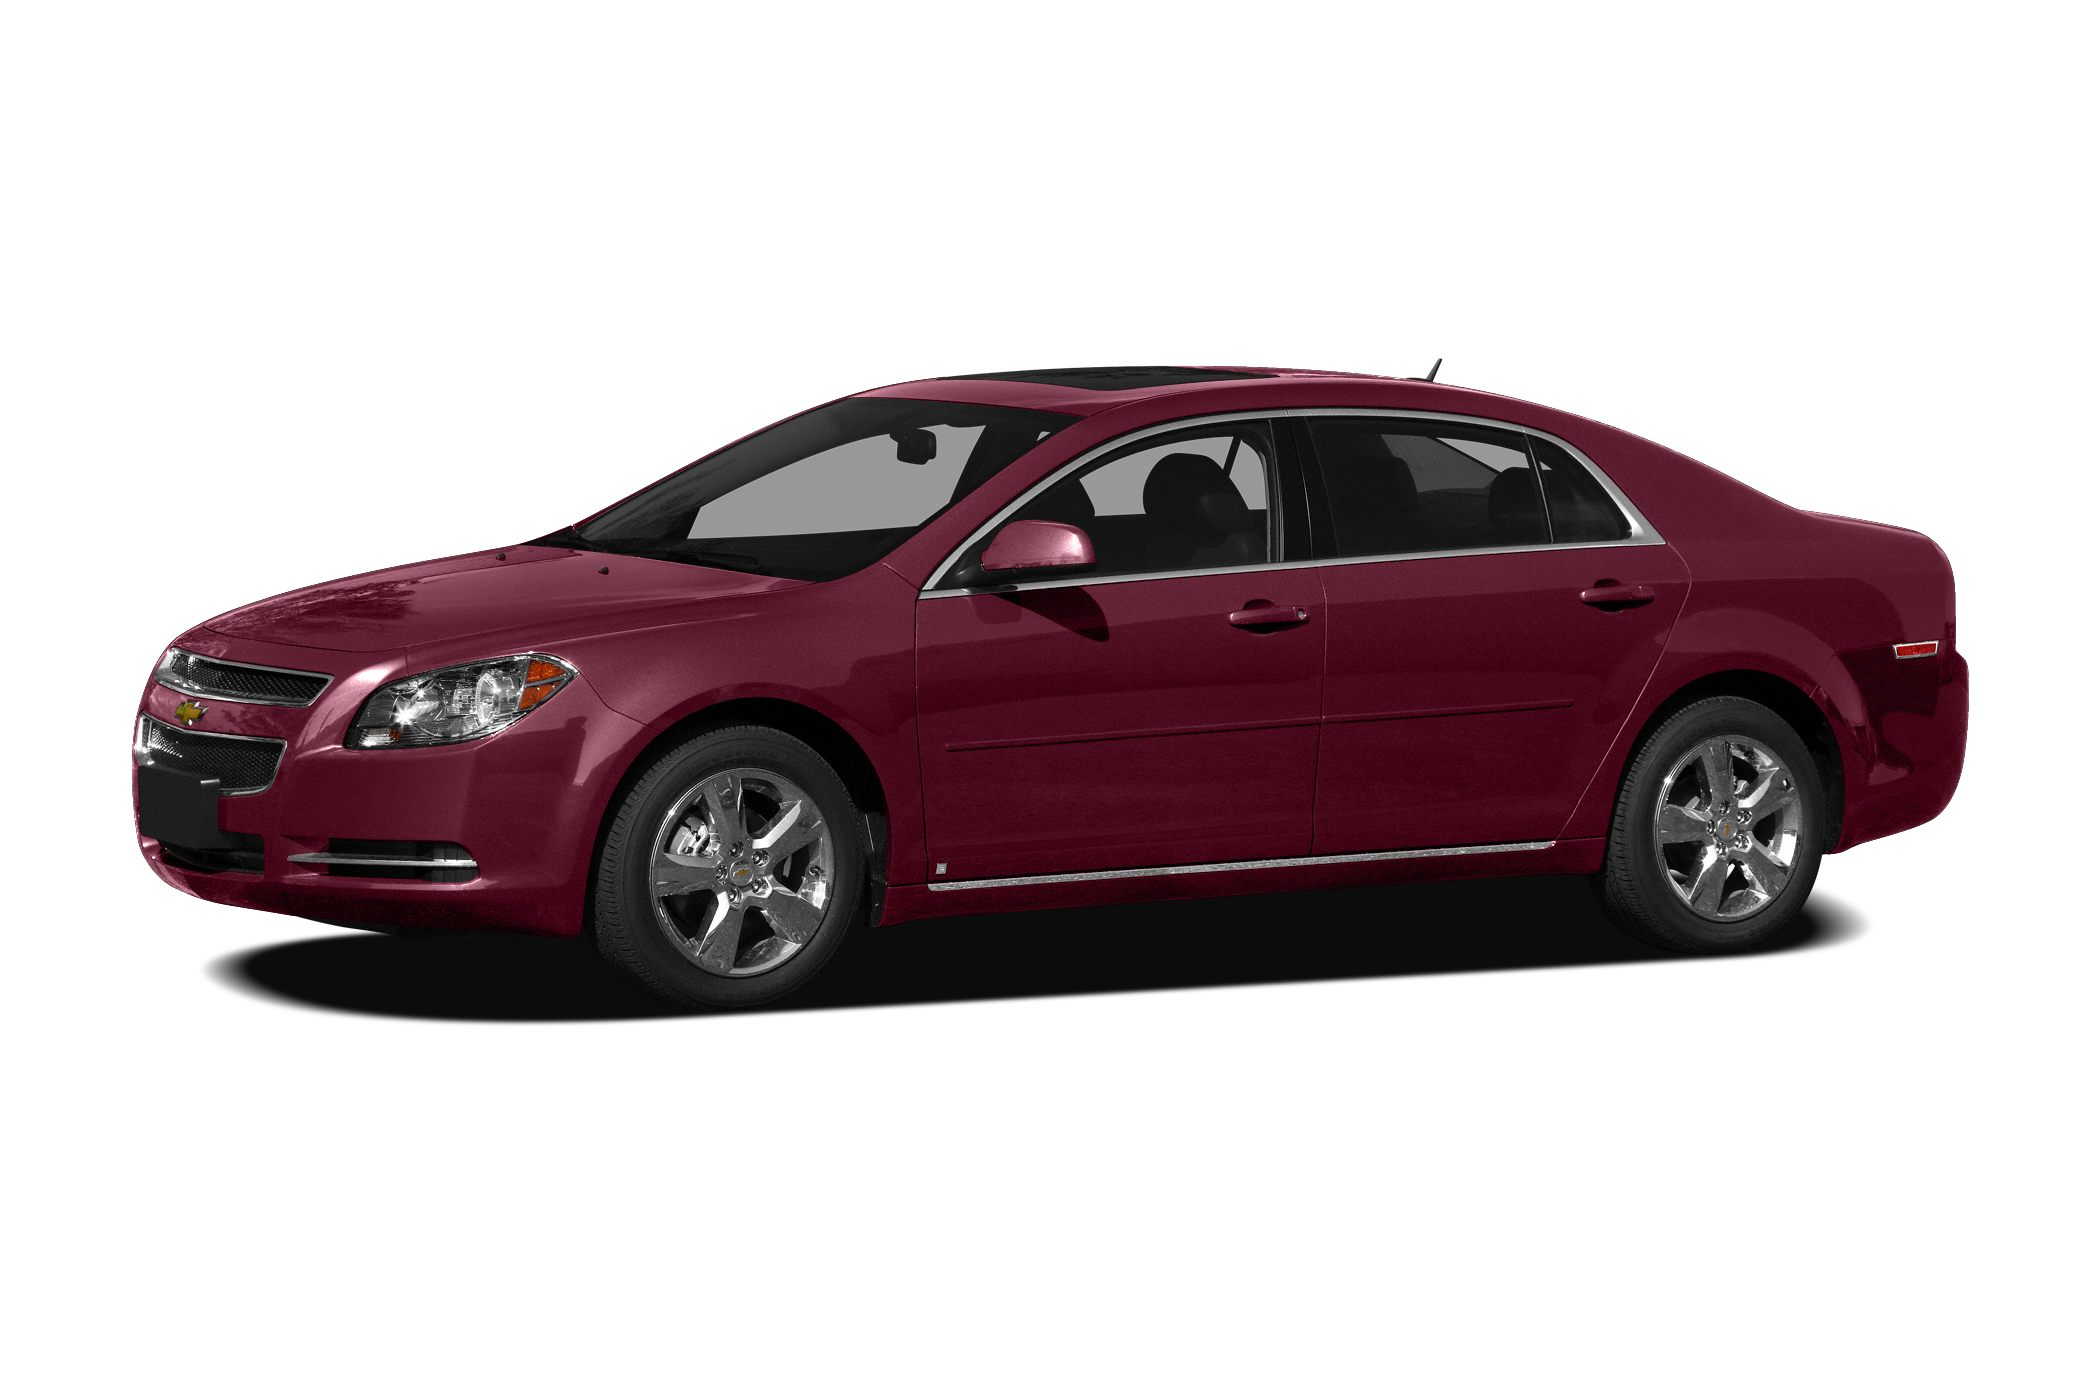 2010 Chevrolet Malibu LT Sedan for sale in Bakersfield for $10,995 with 121,477 miles